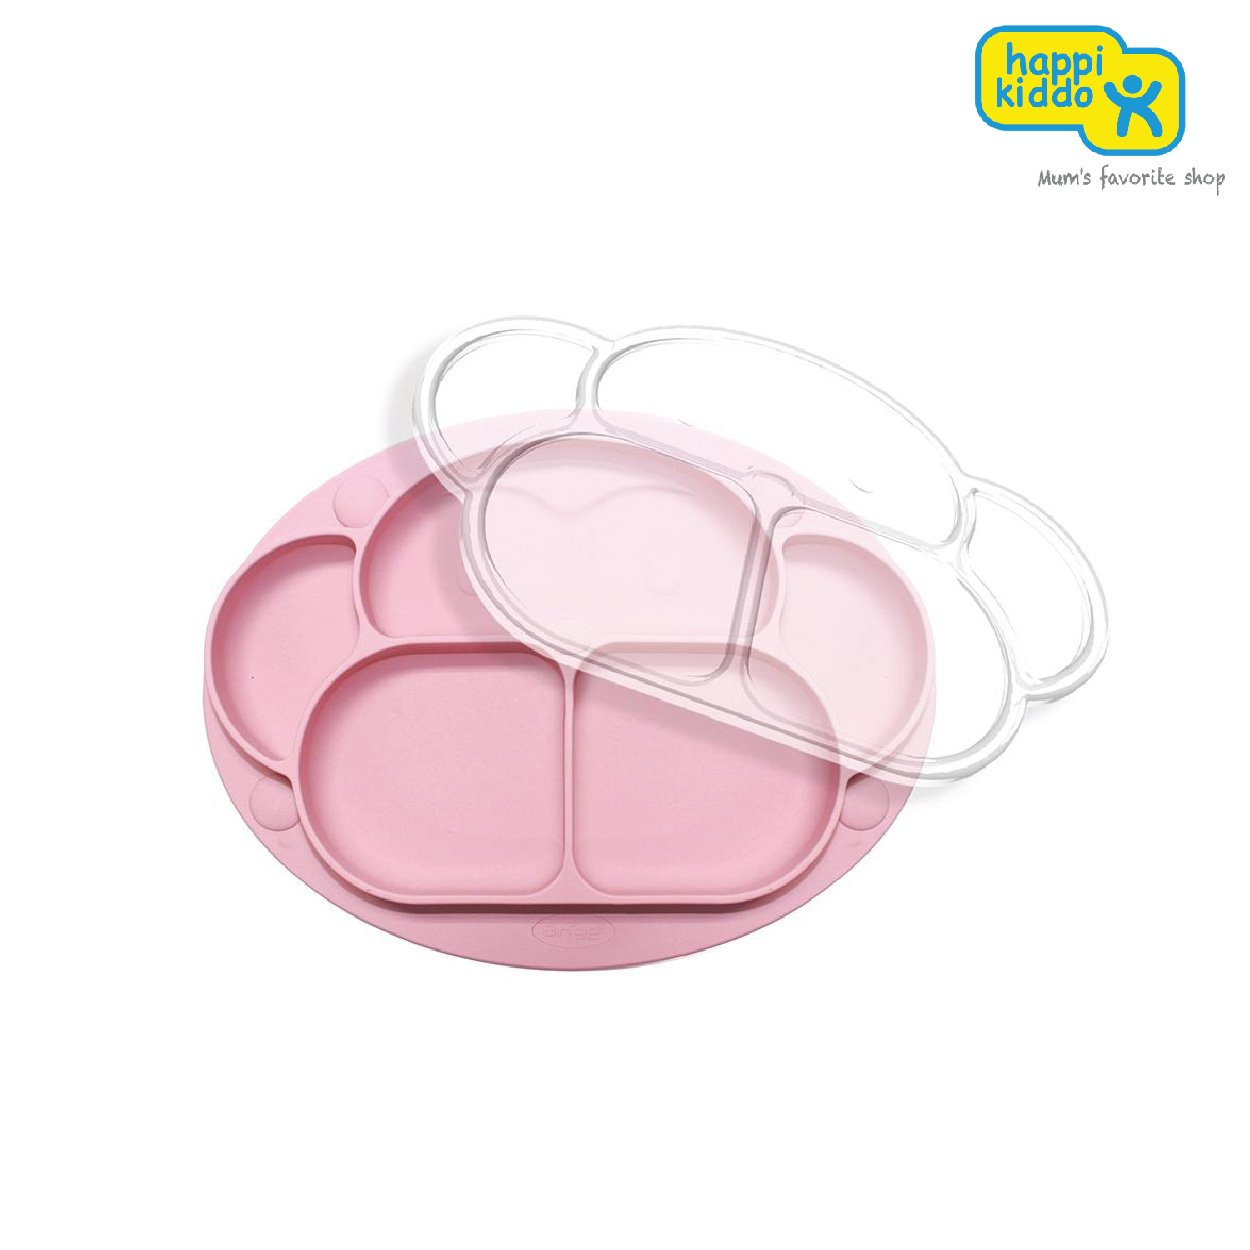 Ange Silicone Monkey Food Tray With Cover